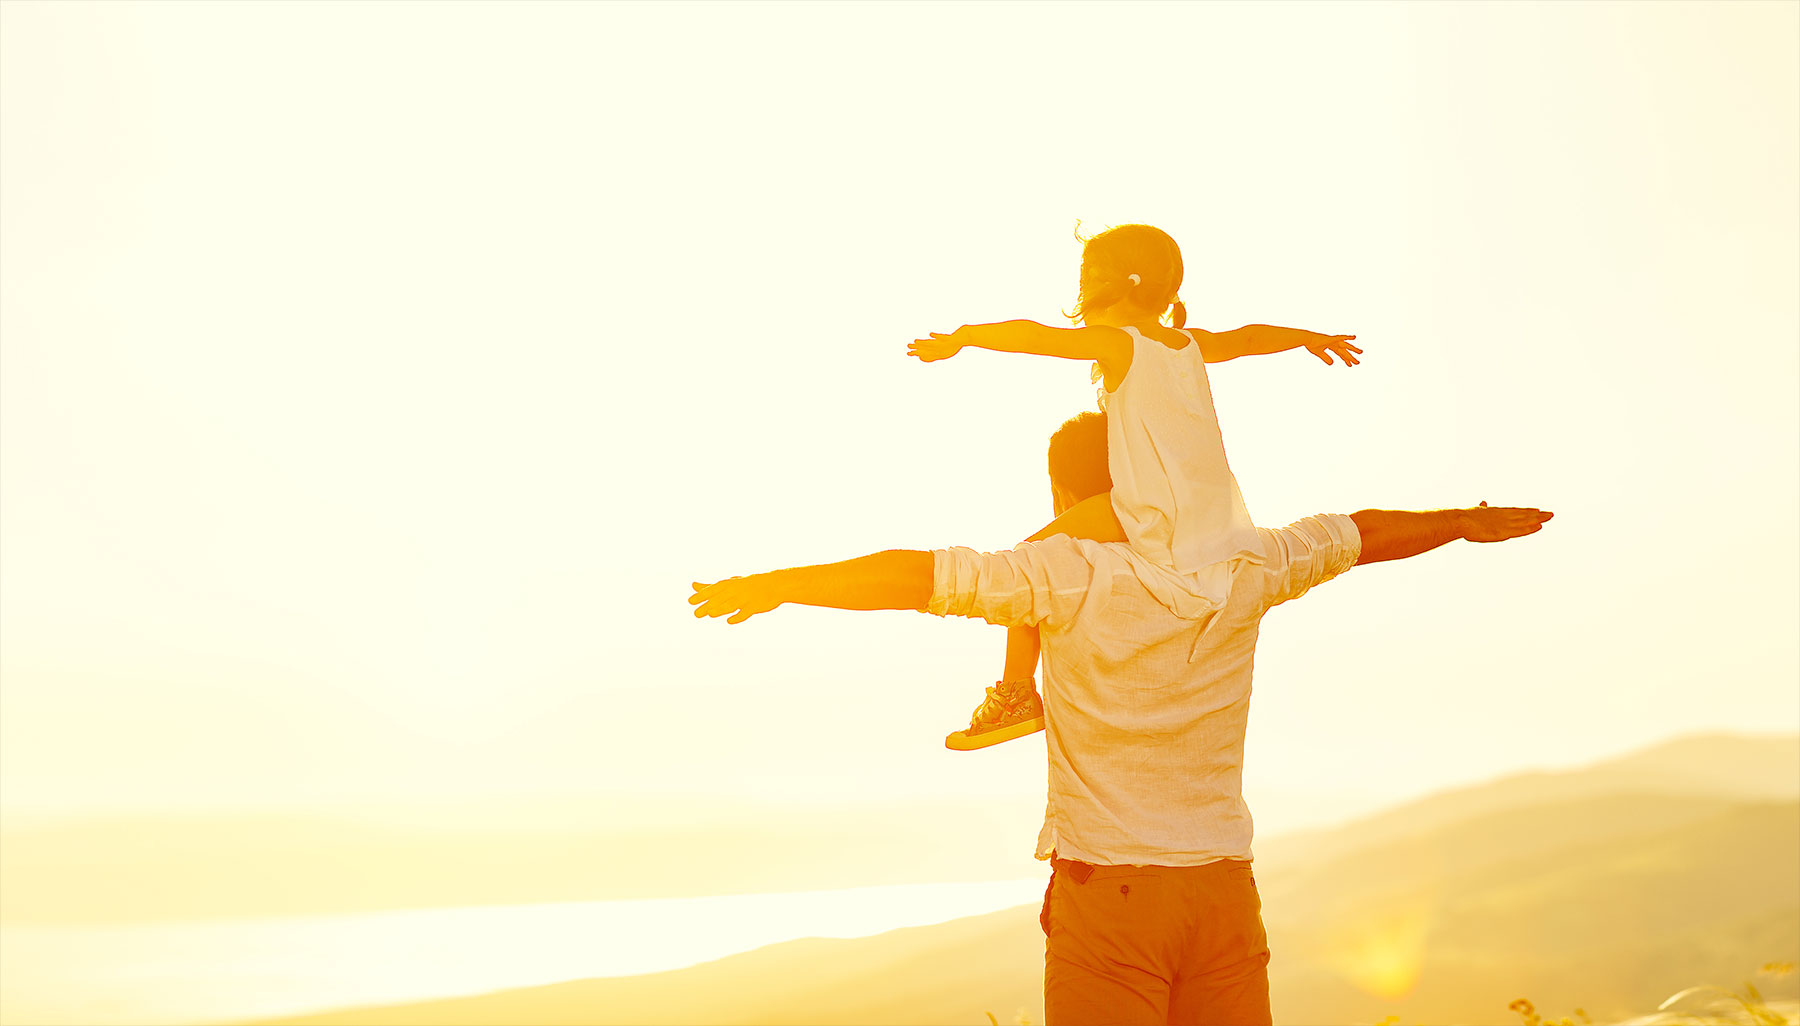 father holding daughter on shoulders, daughter with arms spread in flying motion